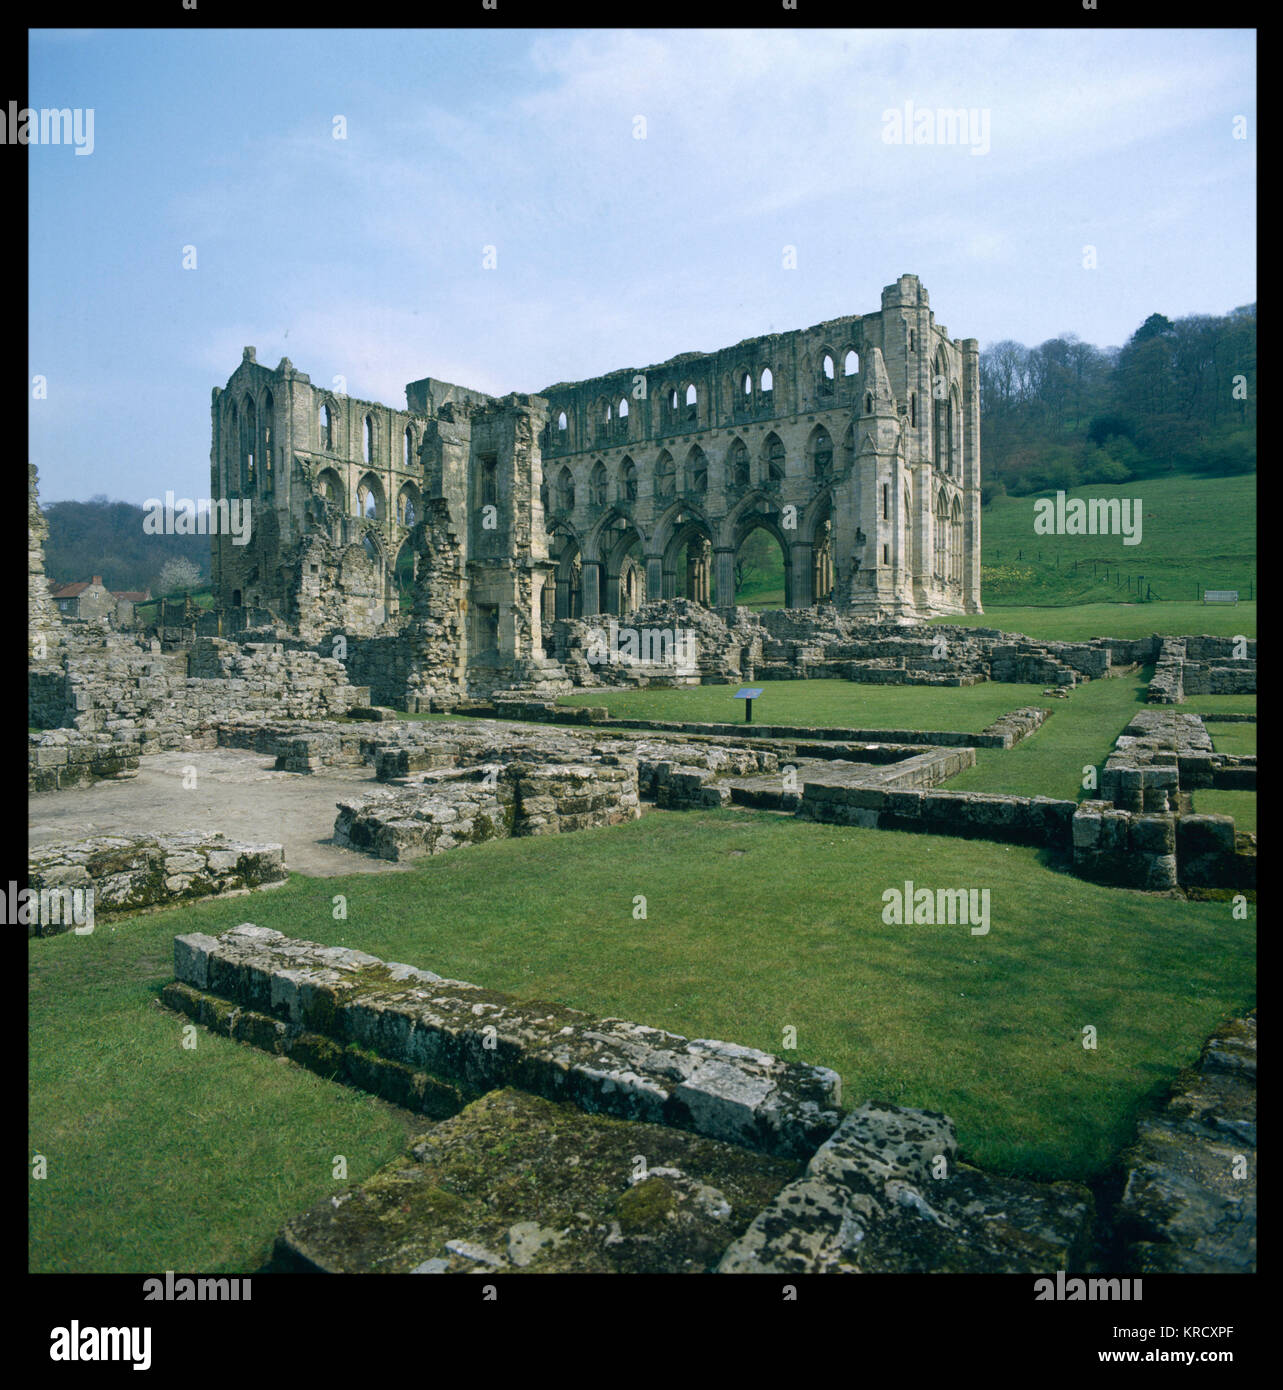 The majestic ruins of Rievaulx  Abbey, North Yorkshire,  England. Built in the 13th  century, it is reputed to have - Stock Image